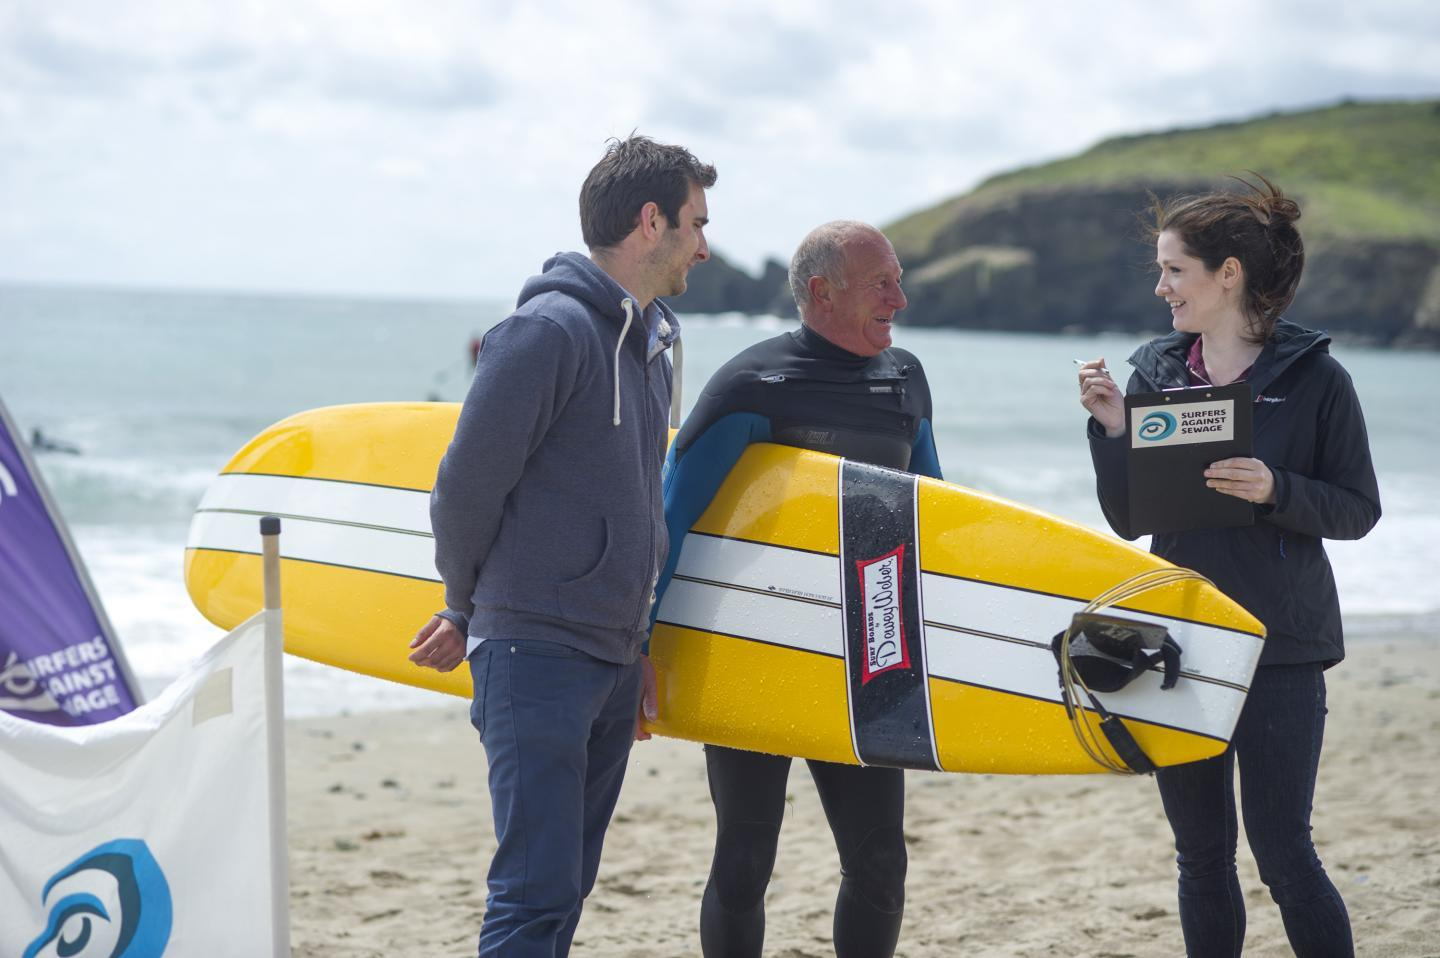 Dr. Anne Leonard interviews surfers on a beach in Cornwall, UK